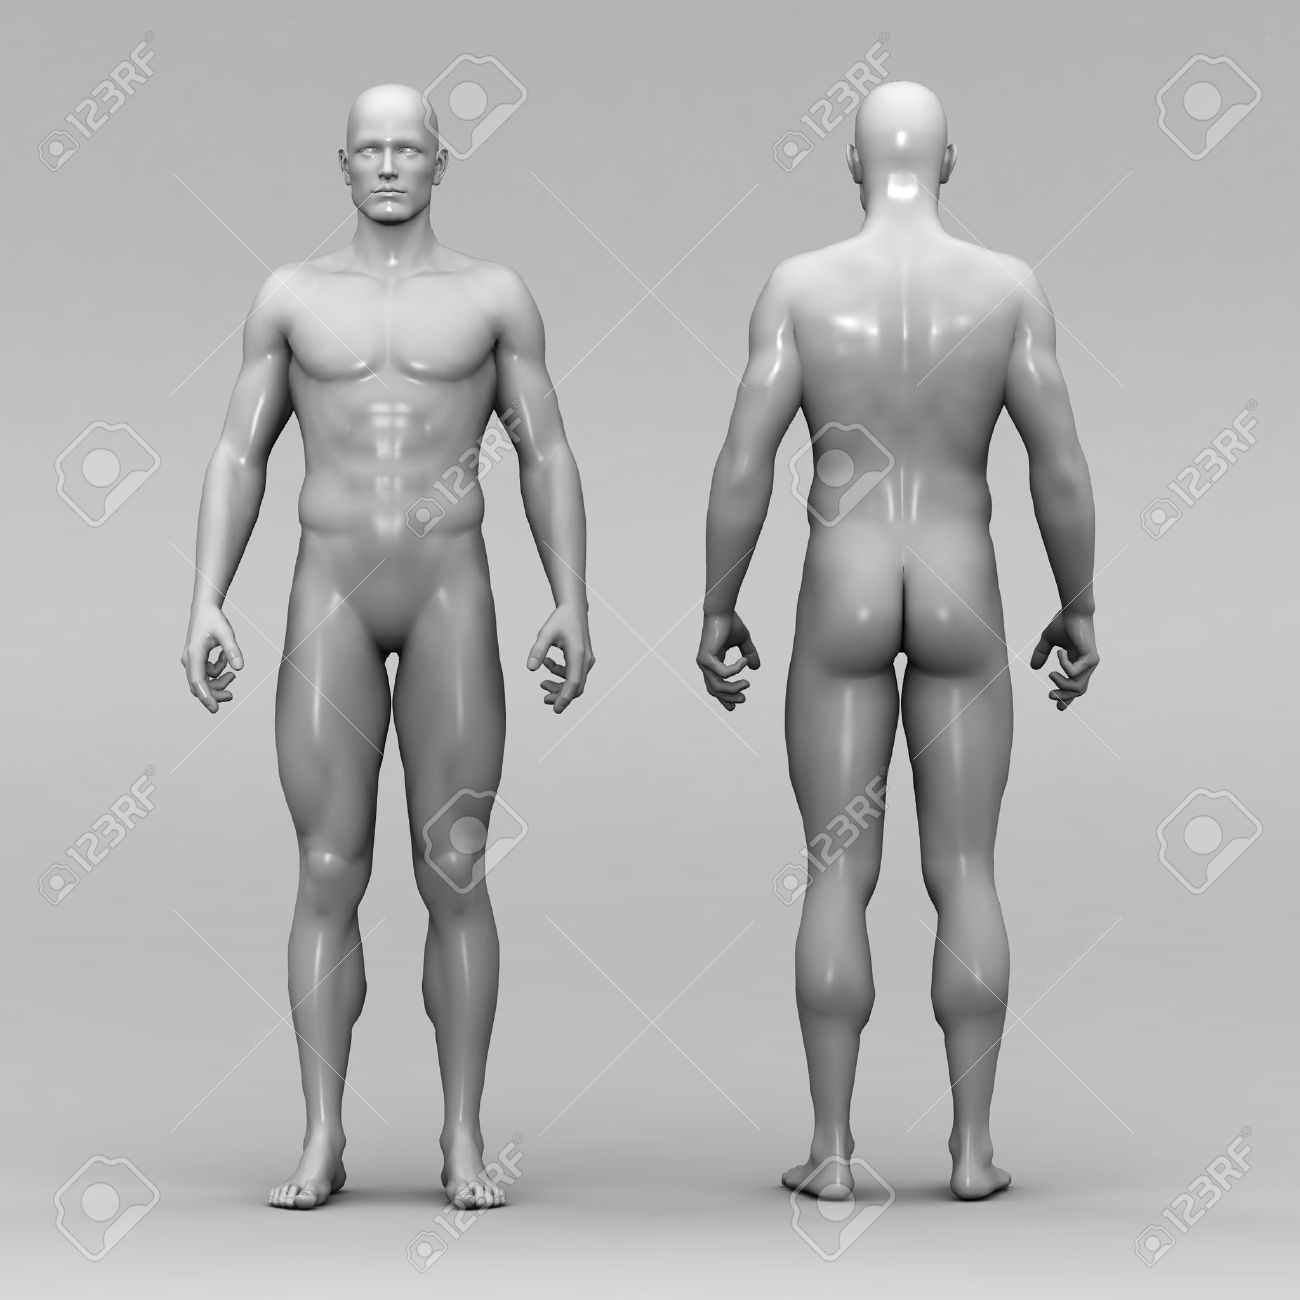 Athletic Male Human Anatomy Stock Photo Picture And Royalty Free